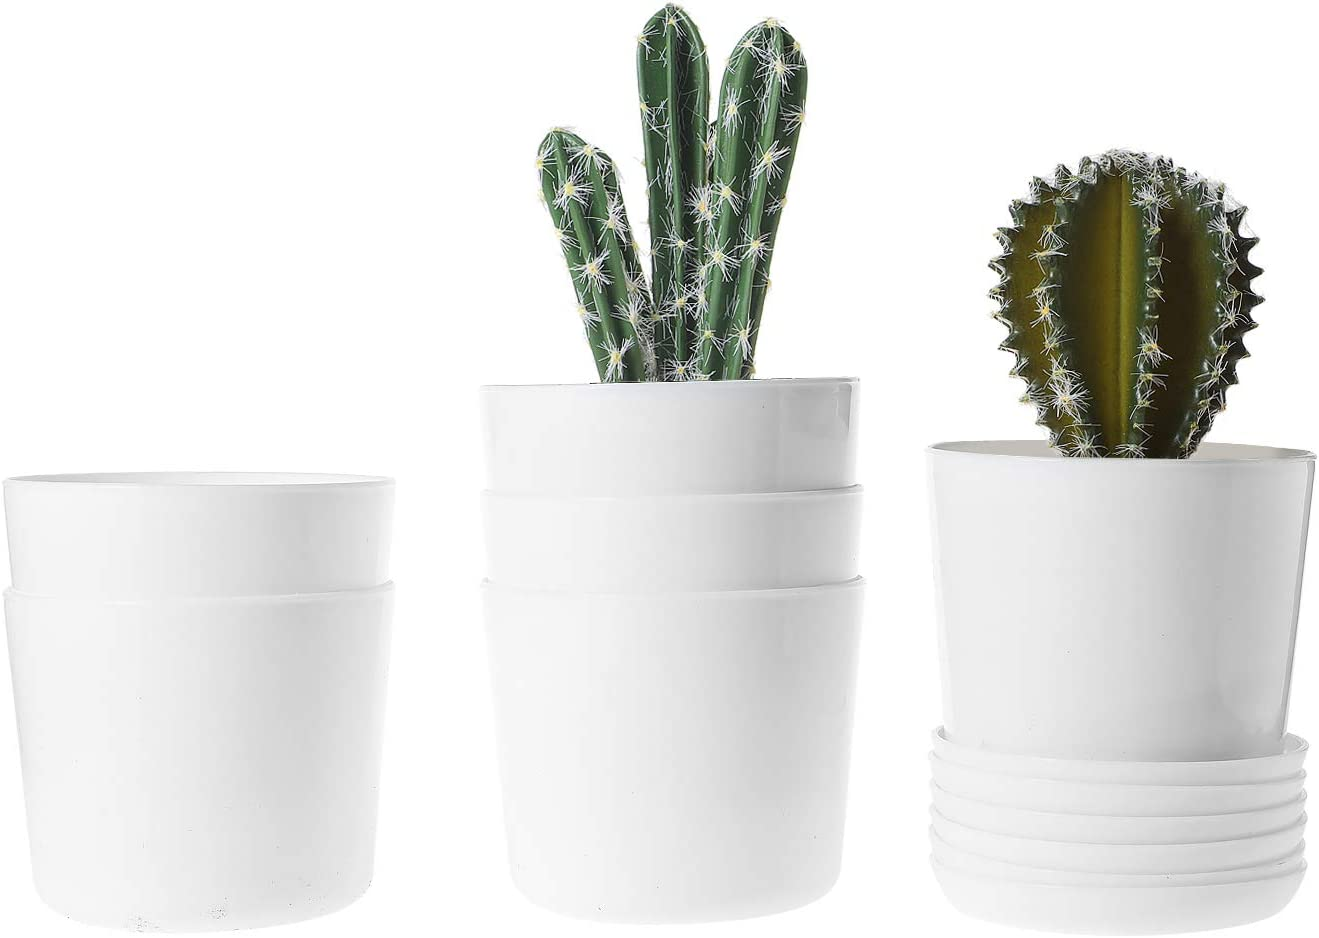 T4U 3.75 Inch Plastic Pot with Saucer White Set of 6, Round Resin Planter Cylinder Garden Plant Container Indoor Outdoor for Orchid Flower Succulent Cactus Home Office Balcony Decor Christmas Gift